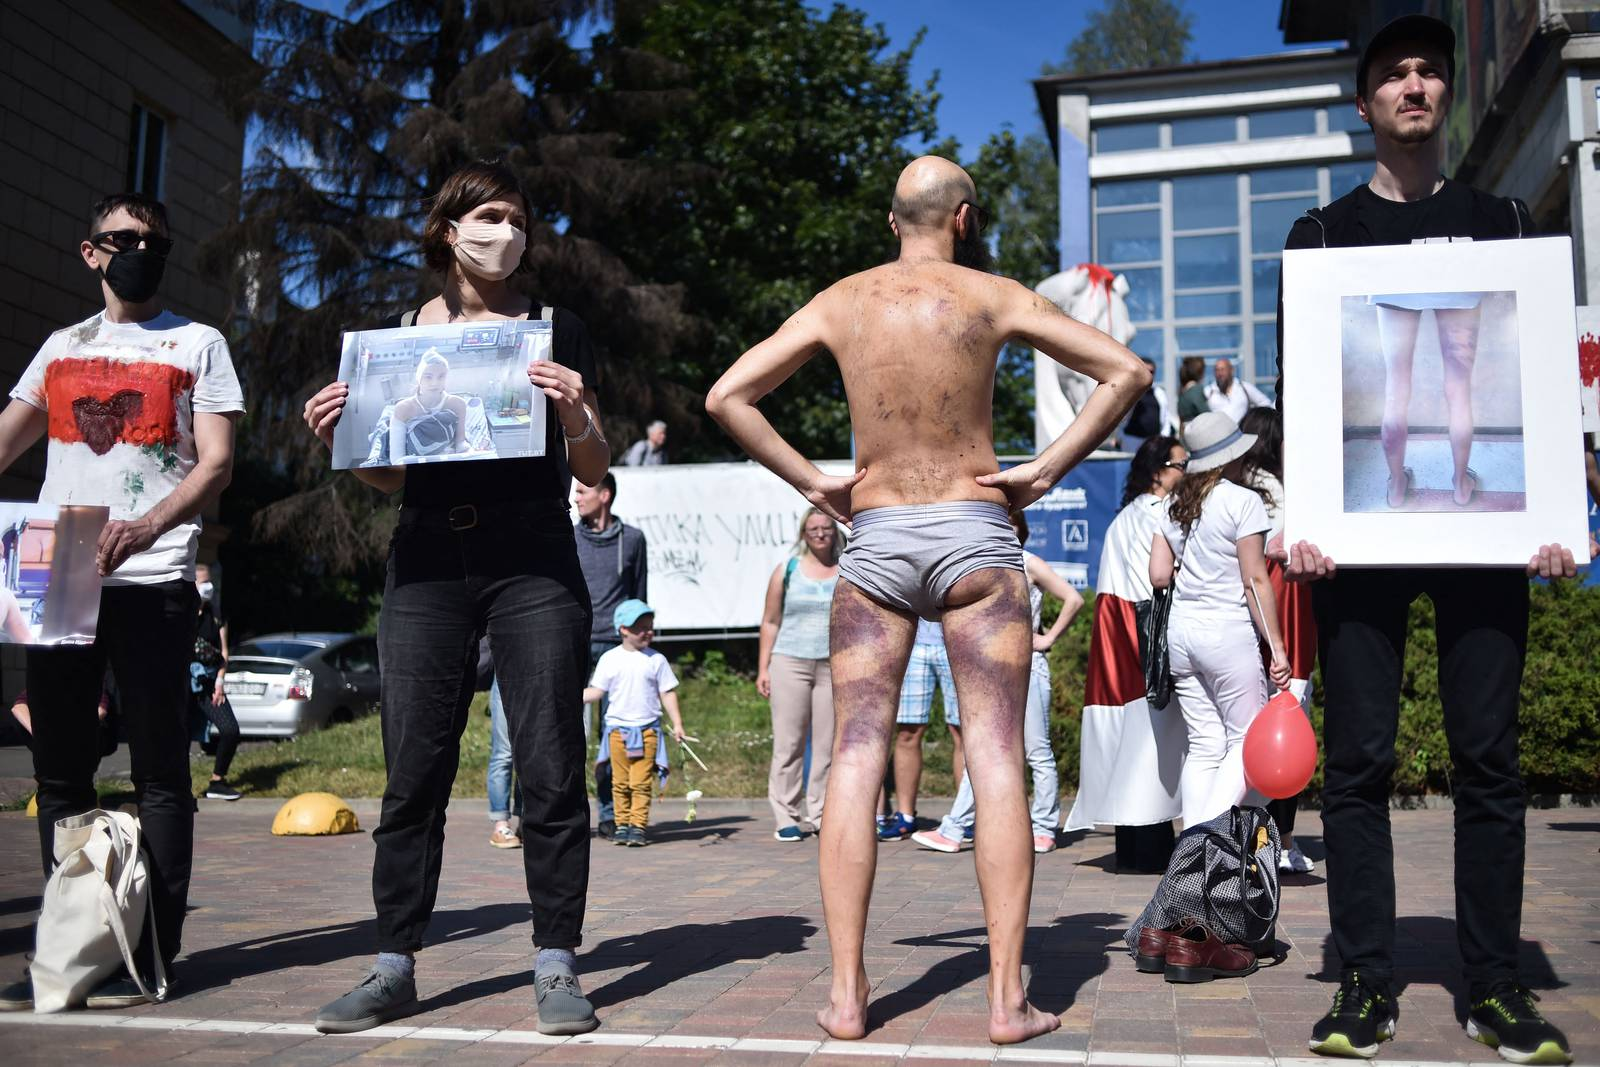 (FILES) In this file photo taken on August 15, 2020 a man (C) shows his injuries as other Belarus opposition supporters hold pictures of beaten people, in central Minsk, during a protest rally near the Pushkinskaya metro station where Alexander Taraikovsky, a 34-year-old protester died amid the clashes protesting the election results on August 10. - Ten Belarusians have filed a criminal complaint in Germany against President Alexander Lukashenko and members of his regime for crimes against humanity during a brutal post-election crackdown, lawyers representing them said on Mai 5, 2021.